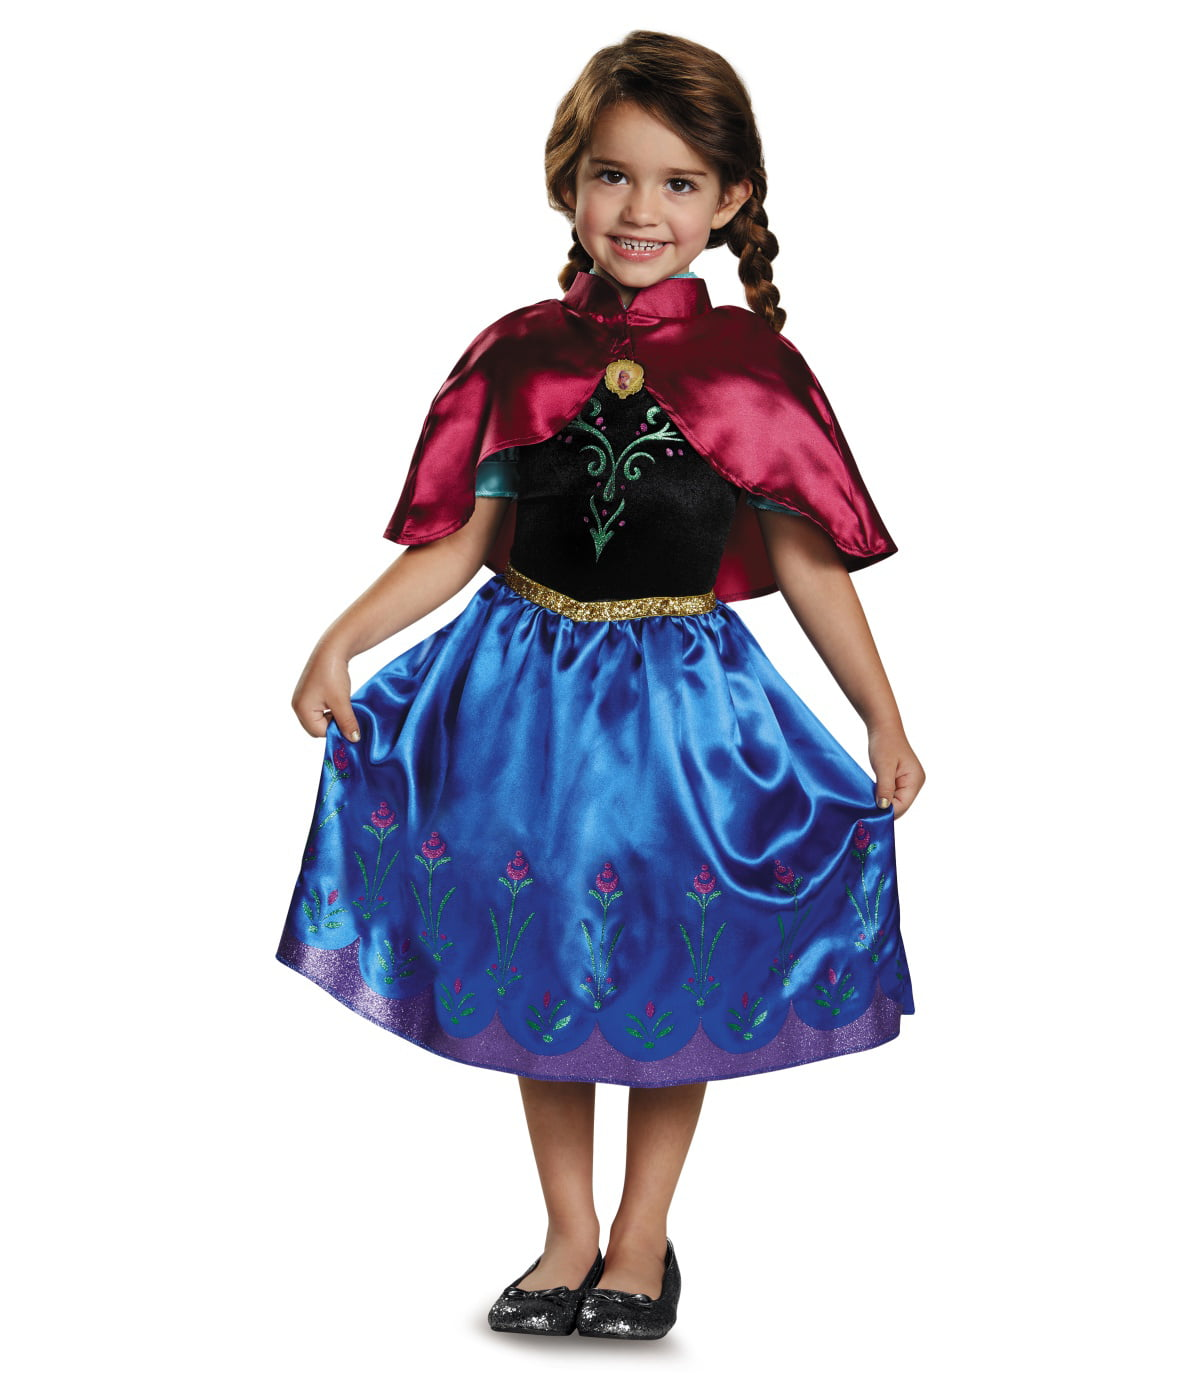 Frozen Anna Little Girls Disney Princess Costume Dress with Shawl - Walmart.com  sc 1 st  Walmart.com & Frozen Anna Little Girls Disney Princess Costume Dress with Shawl ...